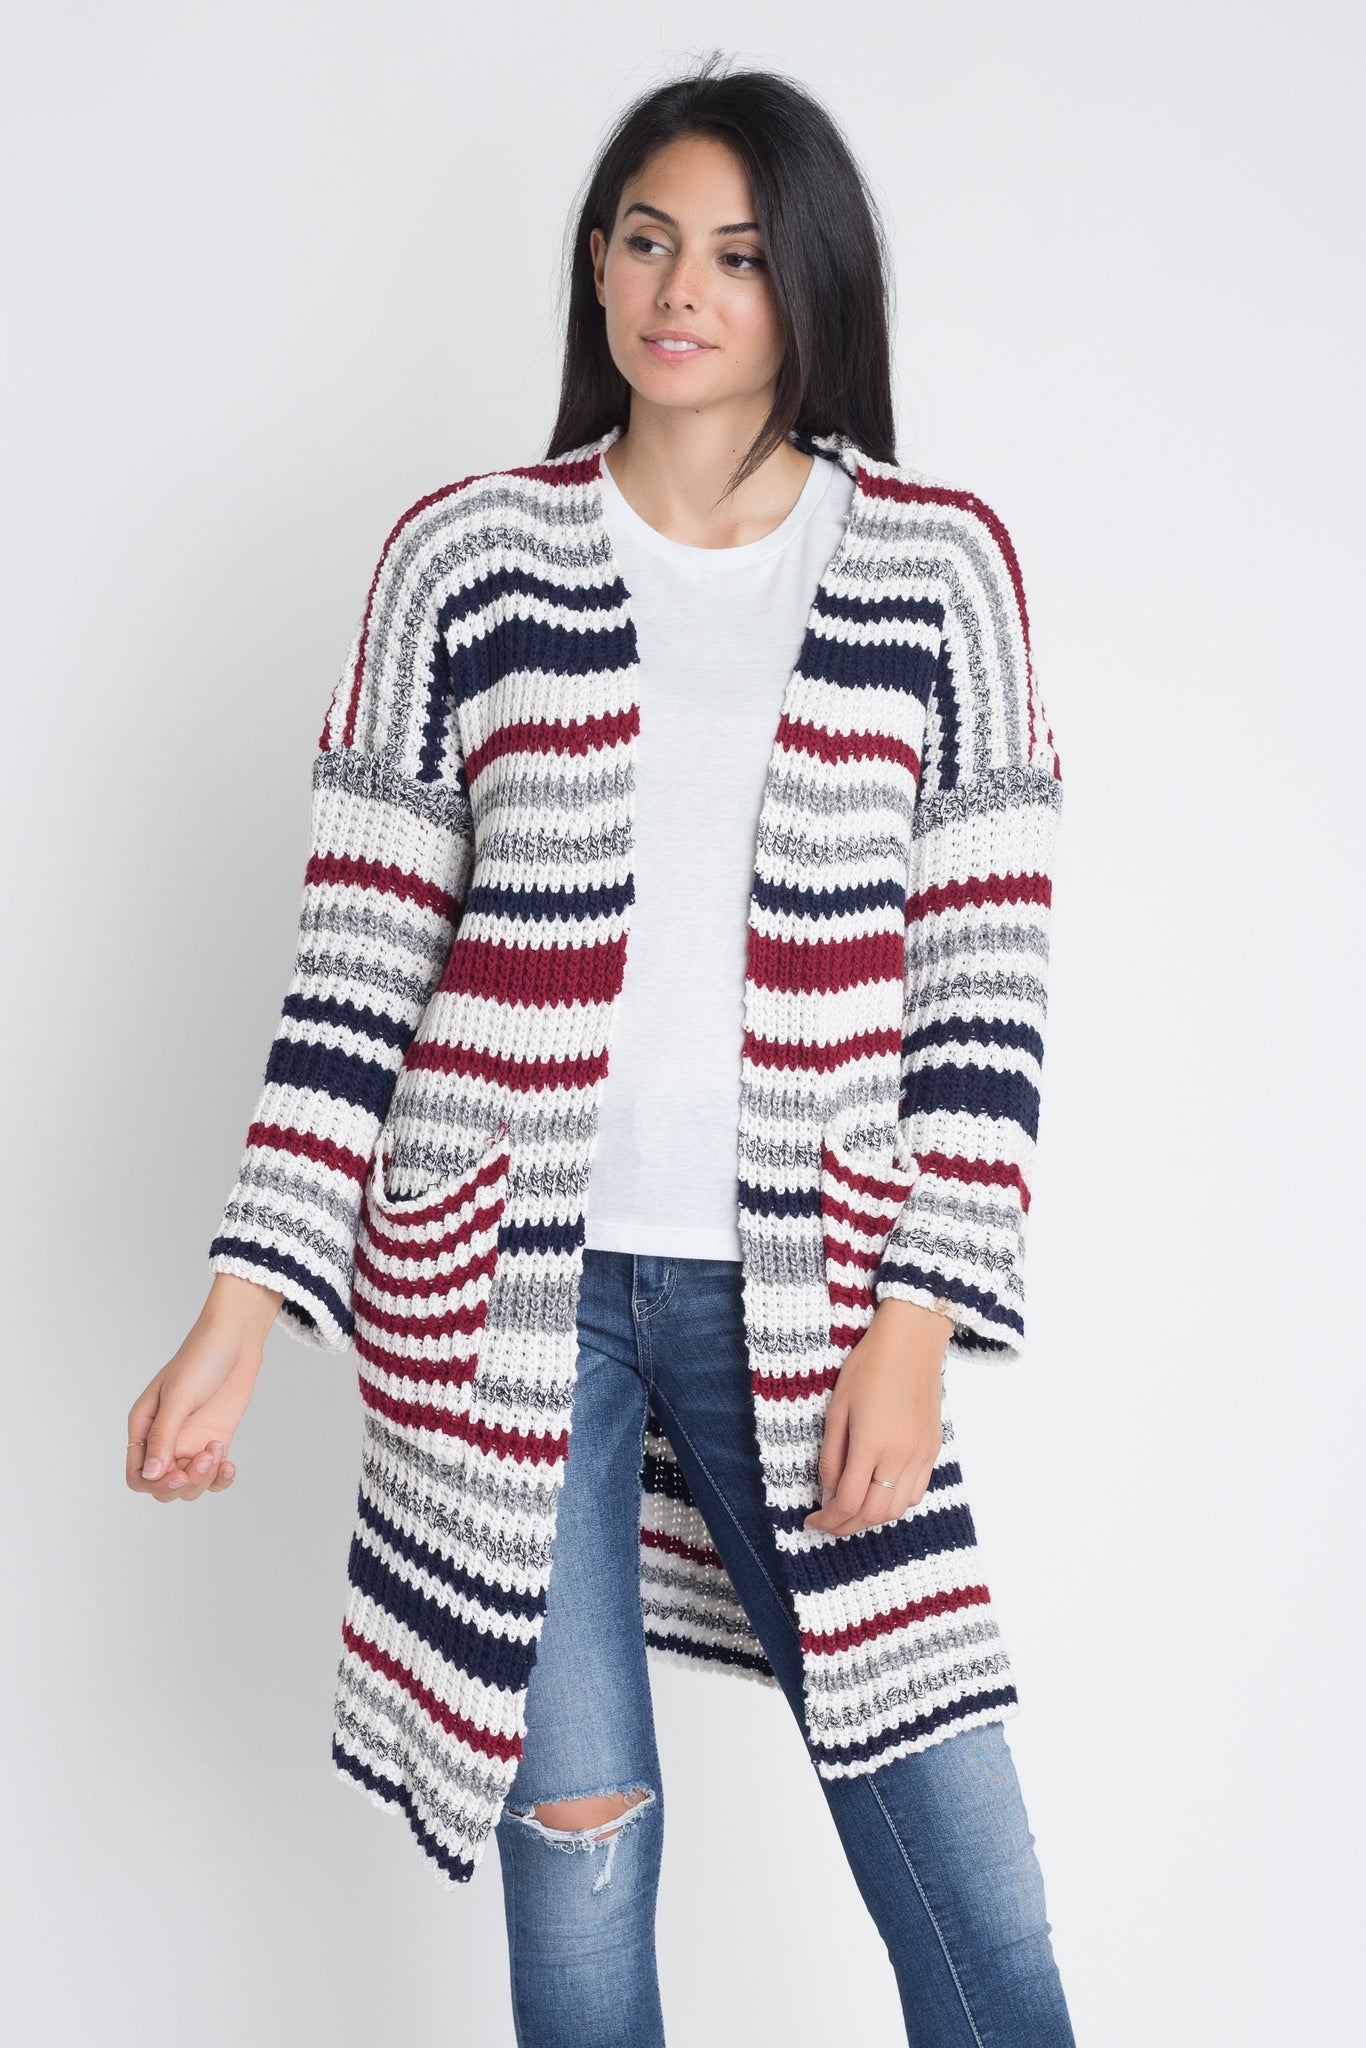 Multi-Color Stripe Knit Cardigan-sweater- Boho Chic - Free Spirit -The Poetic Soul